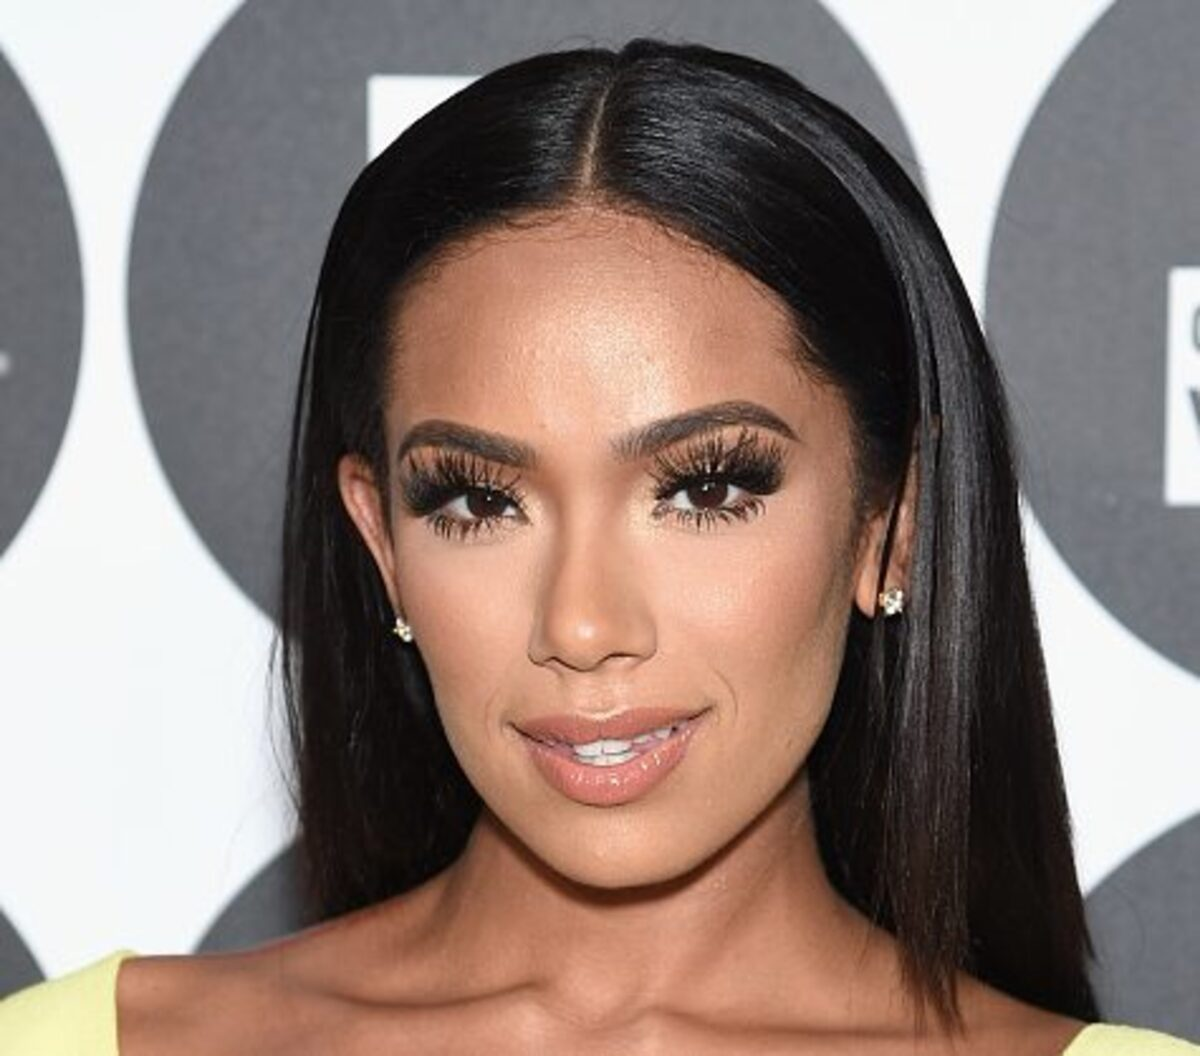 Erica Mena Reveals Followers What She's Having On Her 'Cheat Day' – See The Juicy Clips!